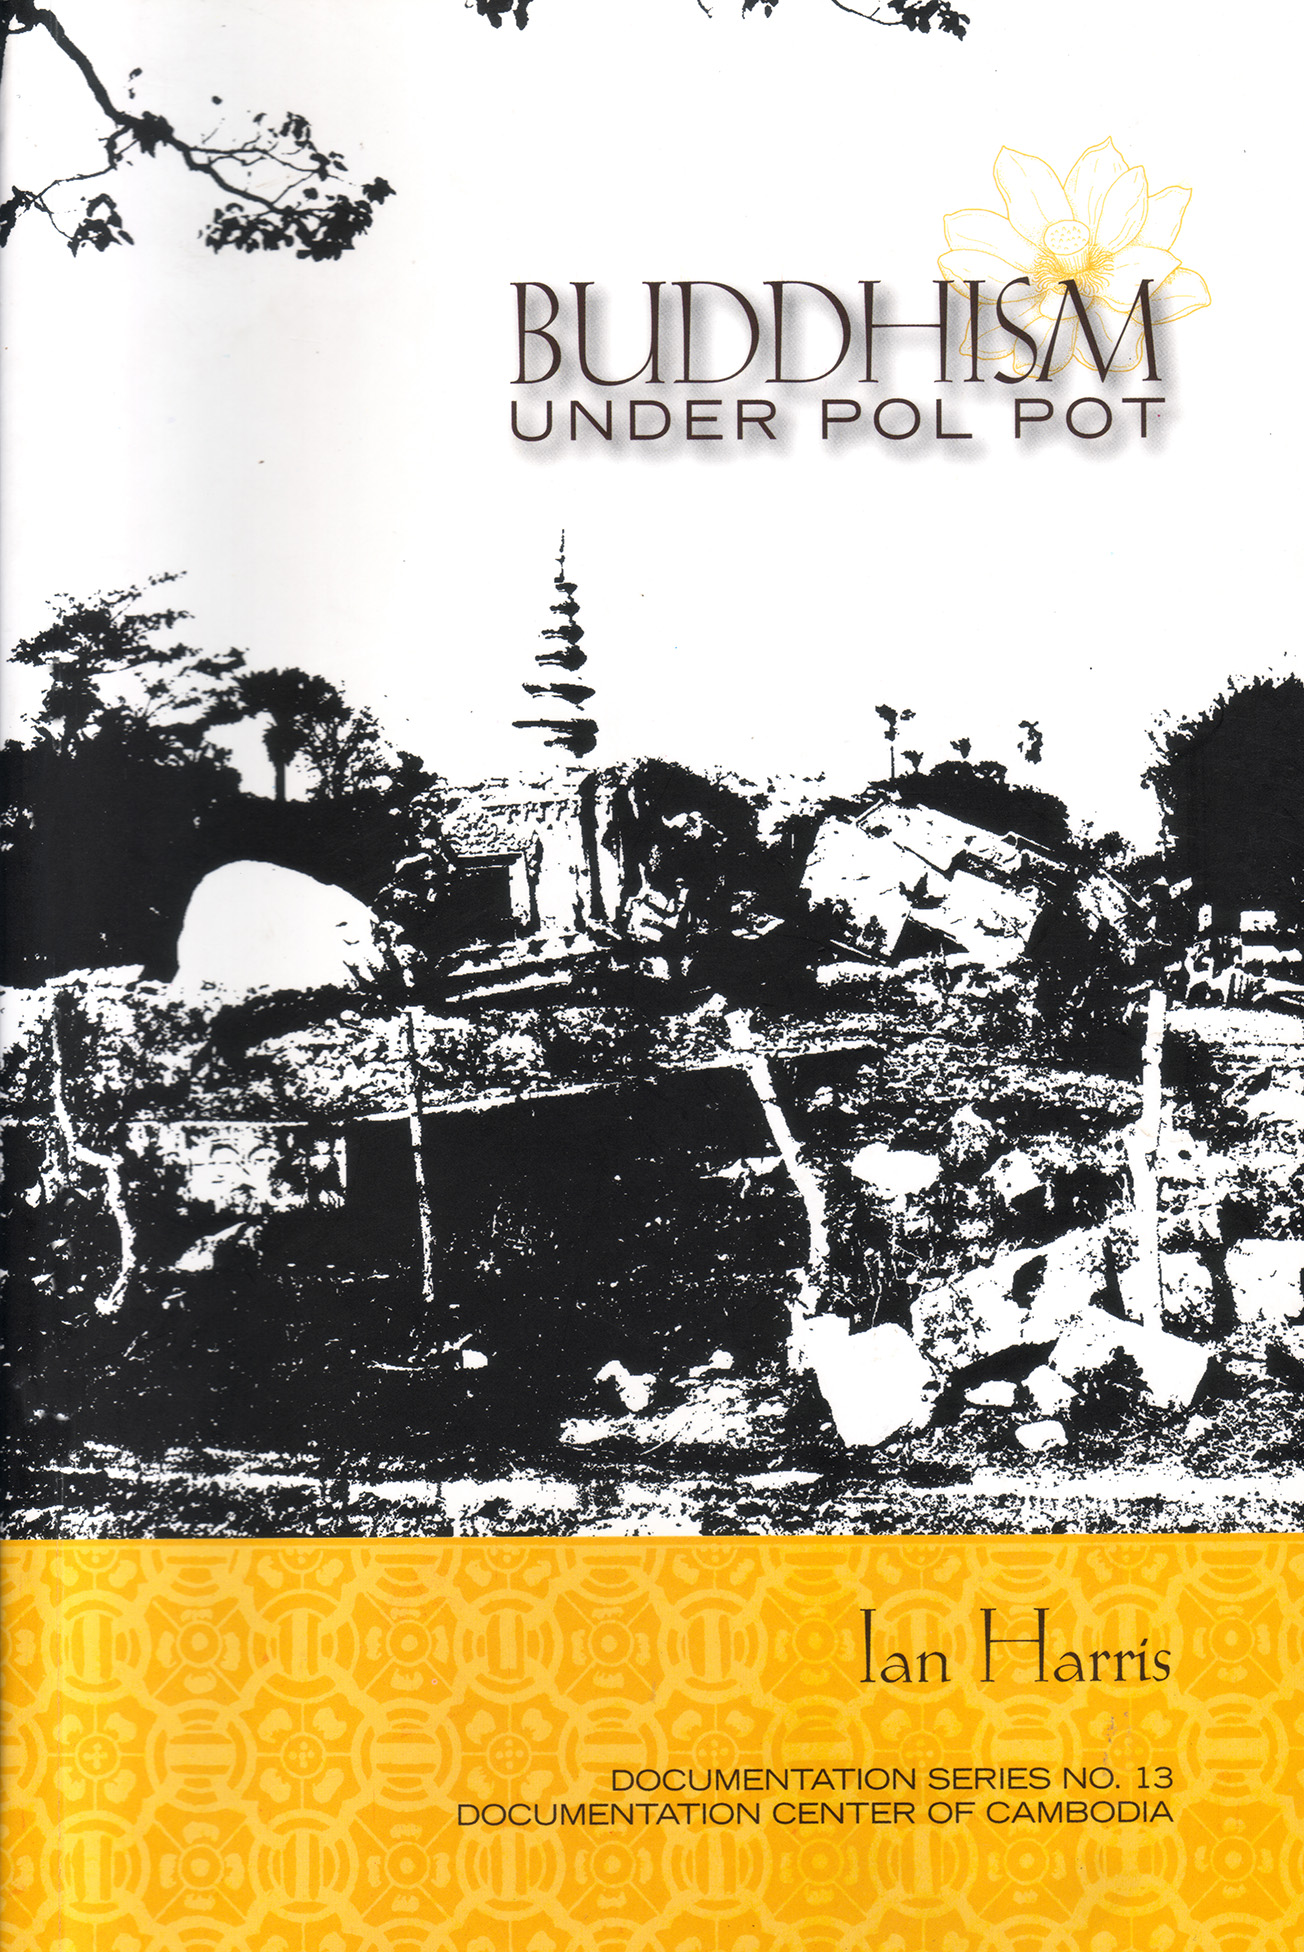 BUDDHISM UNDER POL POT, Ian Harris (2007)